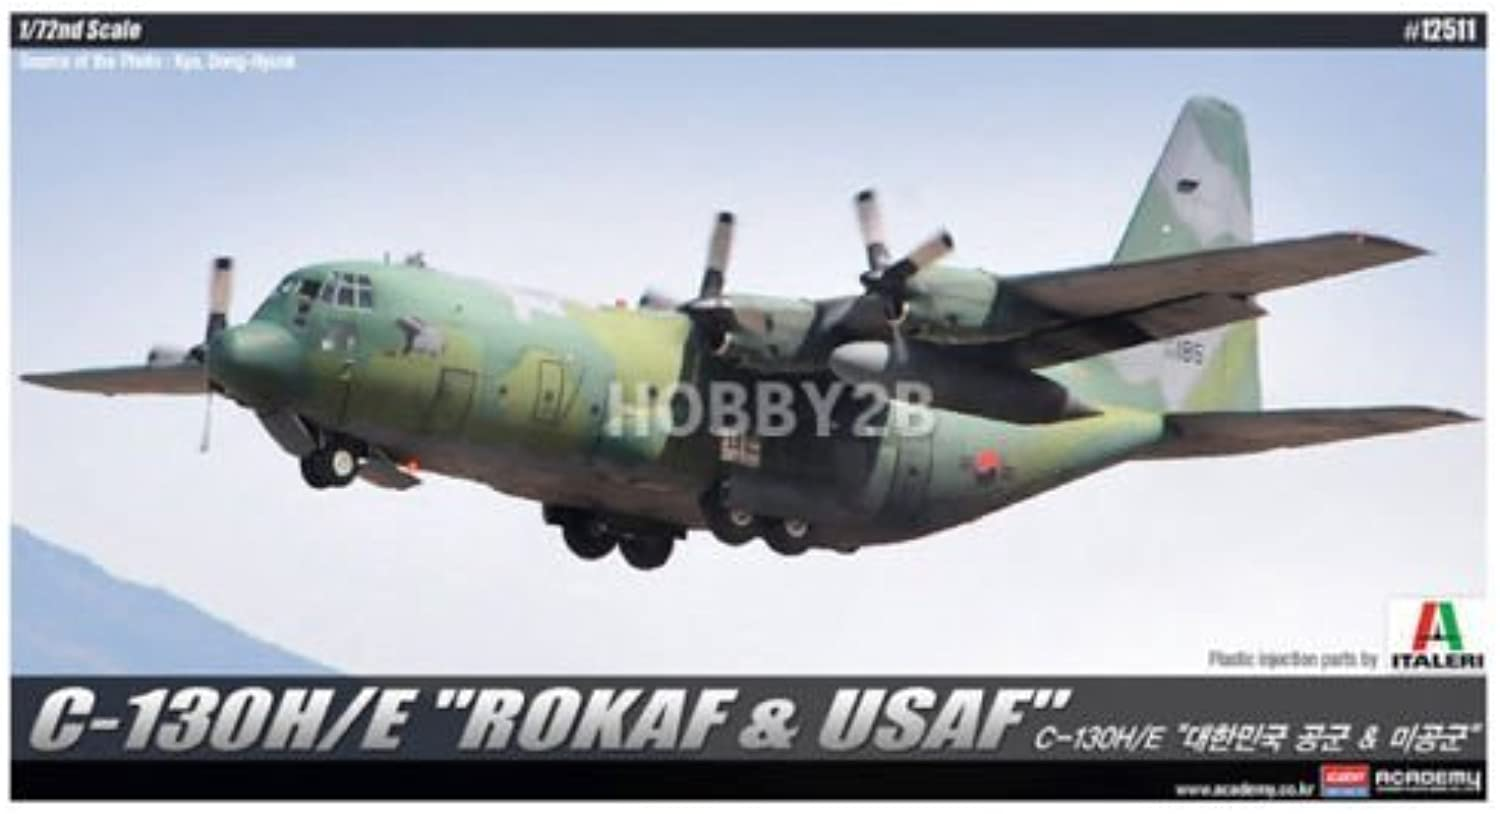 Academy 1 72 C-130H E ROKAF & USAF Aircraft Plastic Model Kit  12511 by Academy